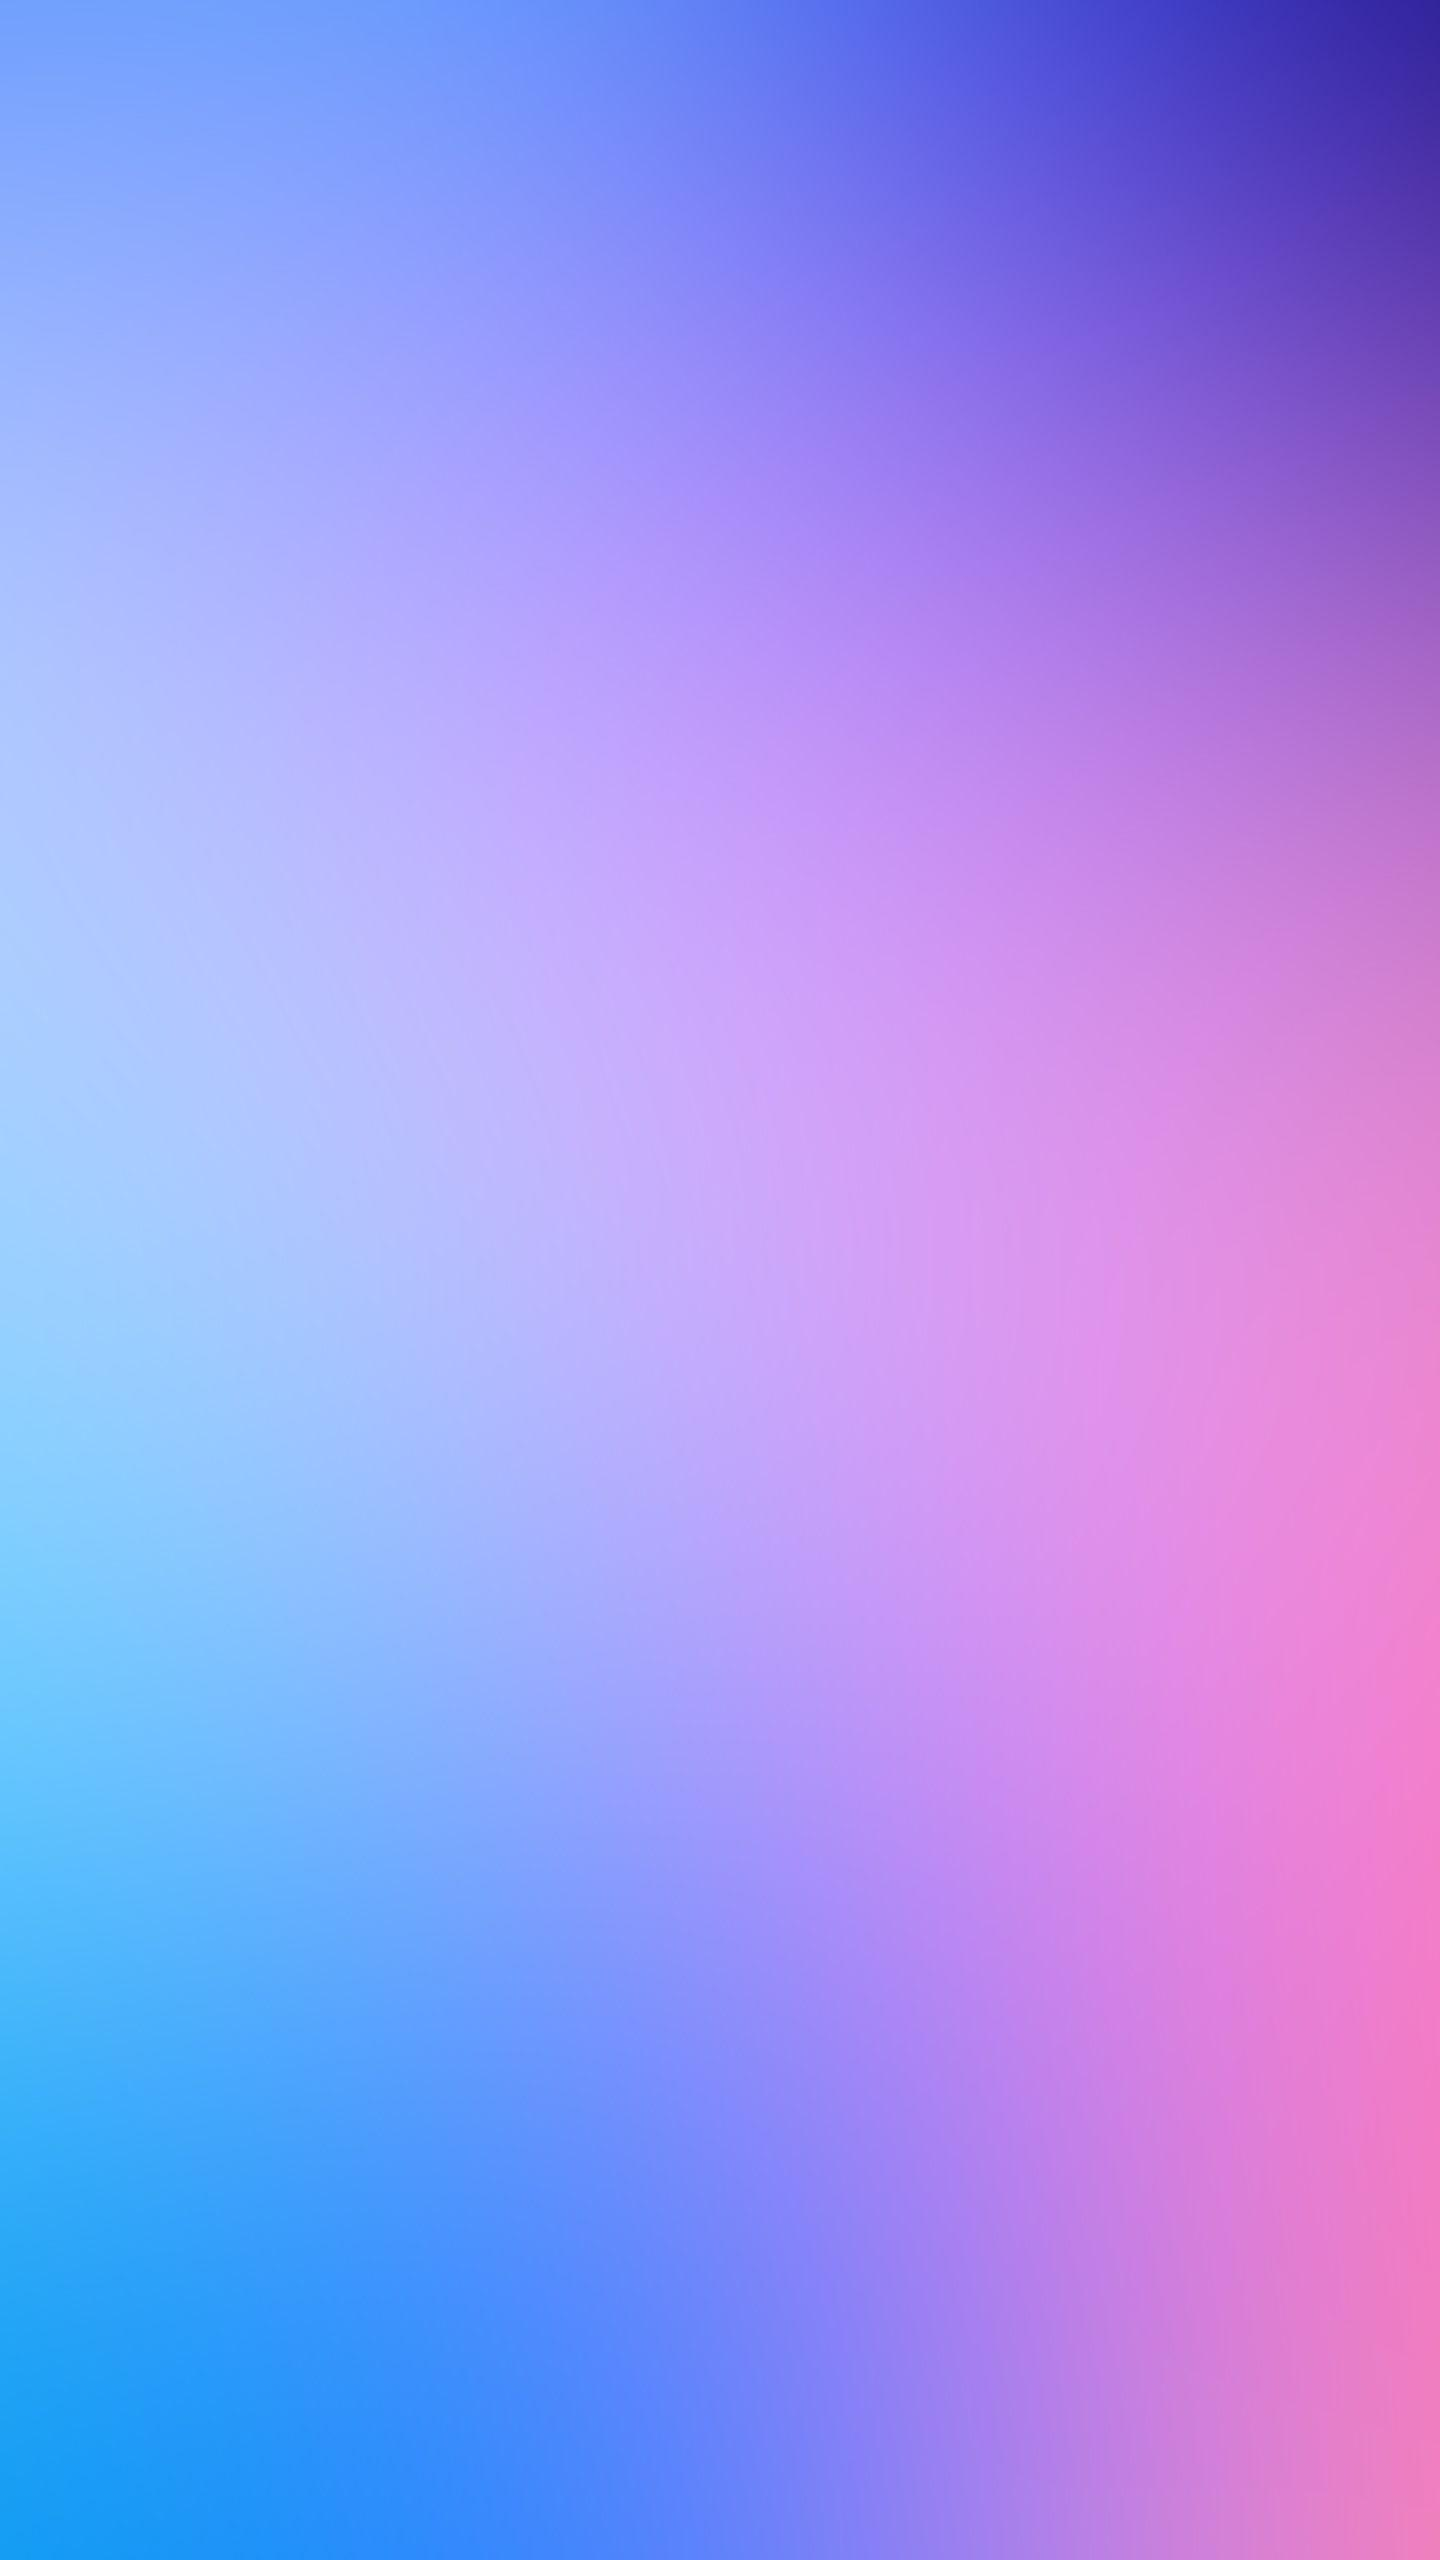 Android 9:16 Wallpapers - Wallpaper Cave